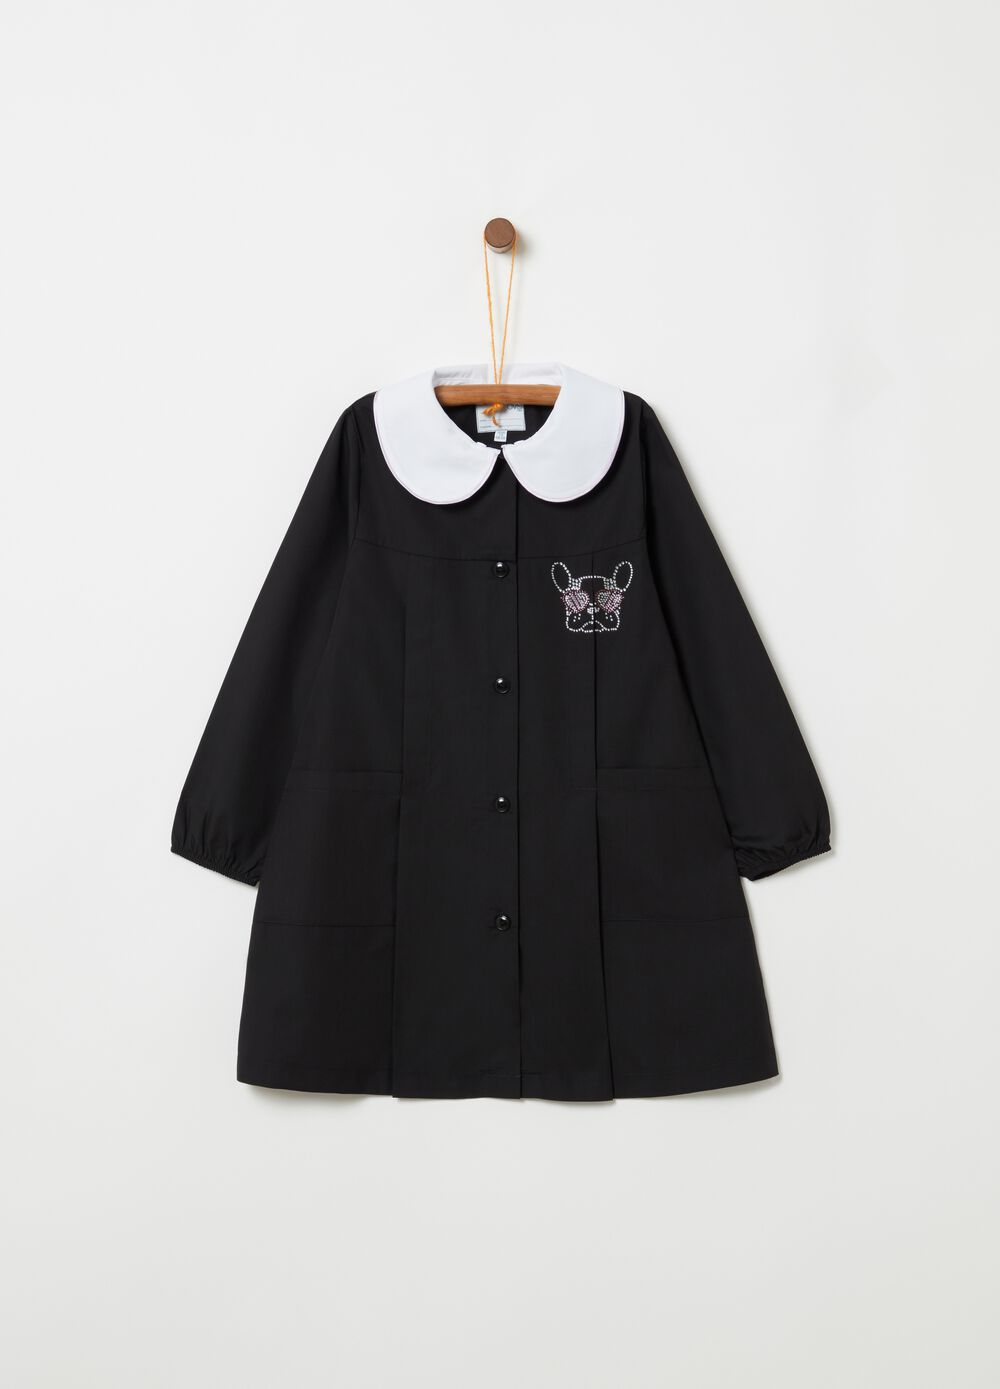 School smock with rounded collar and pockets